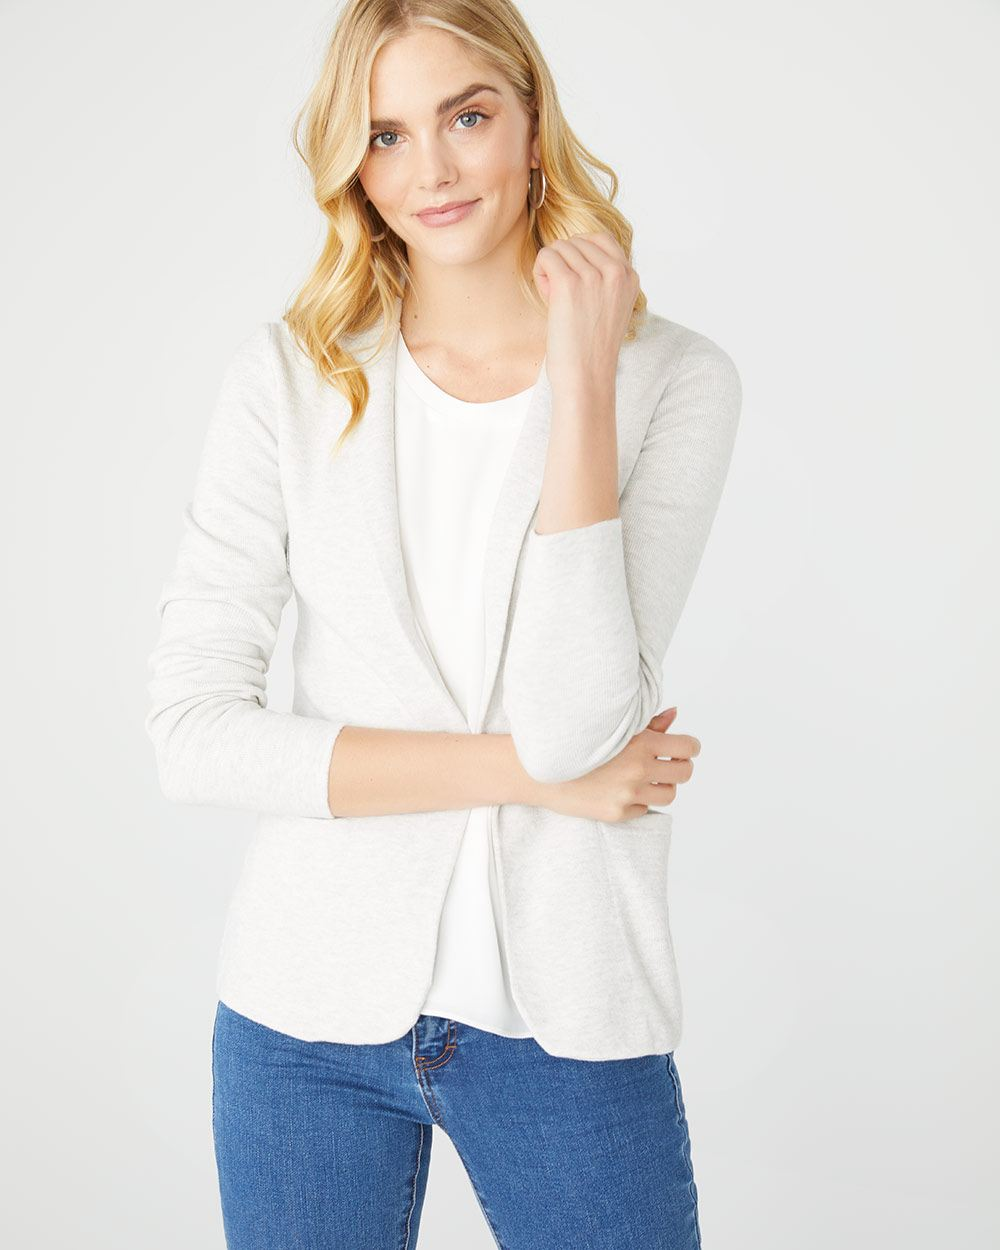 Fancy stitch blazer-style cardigan